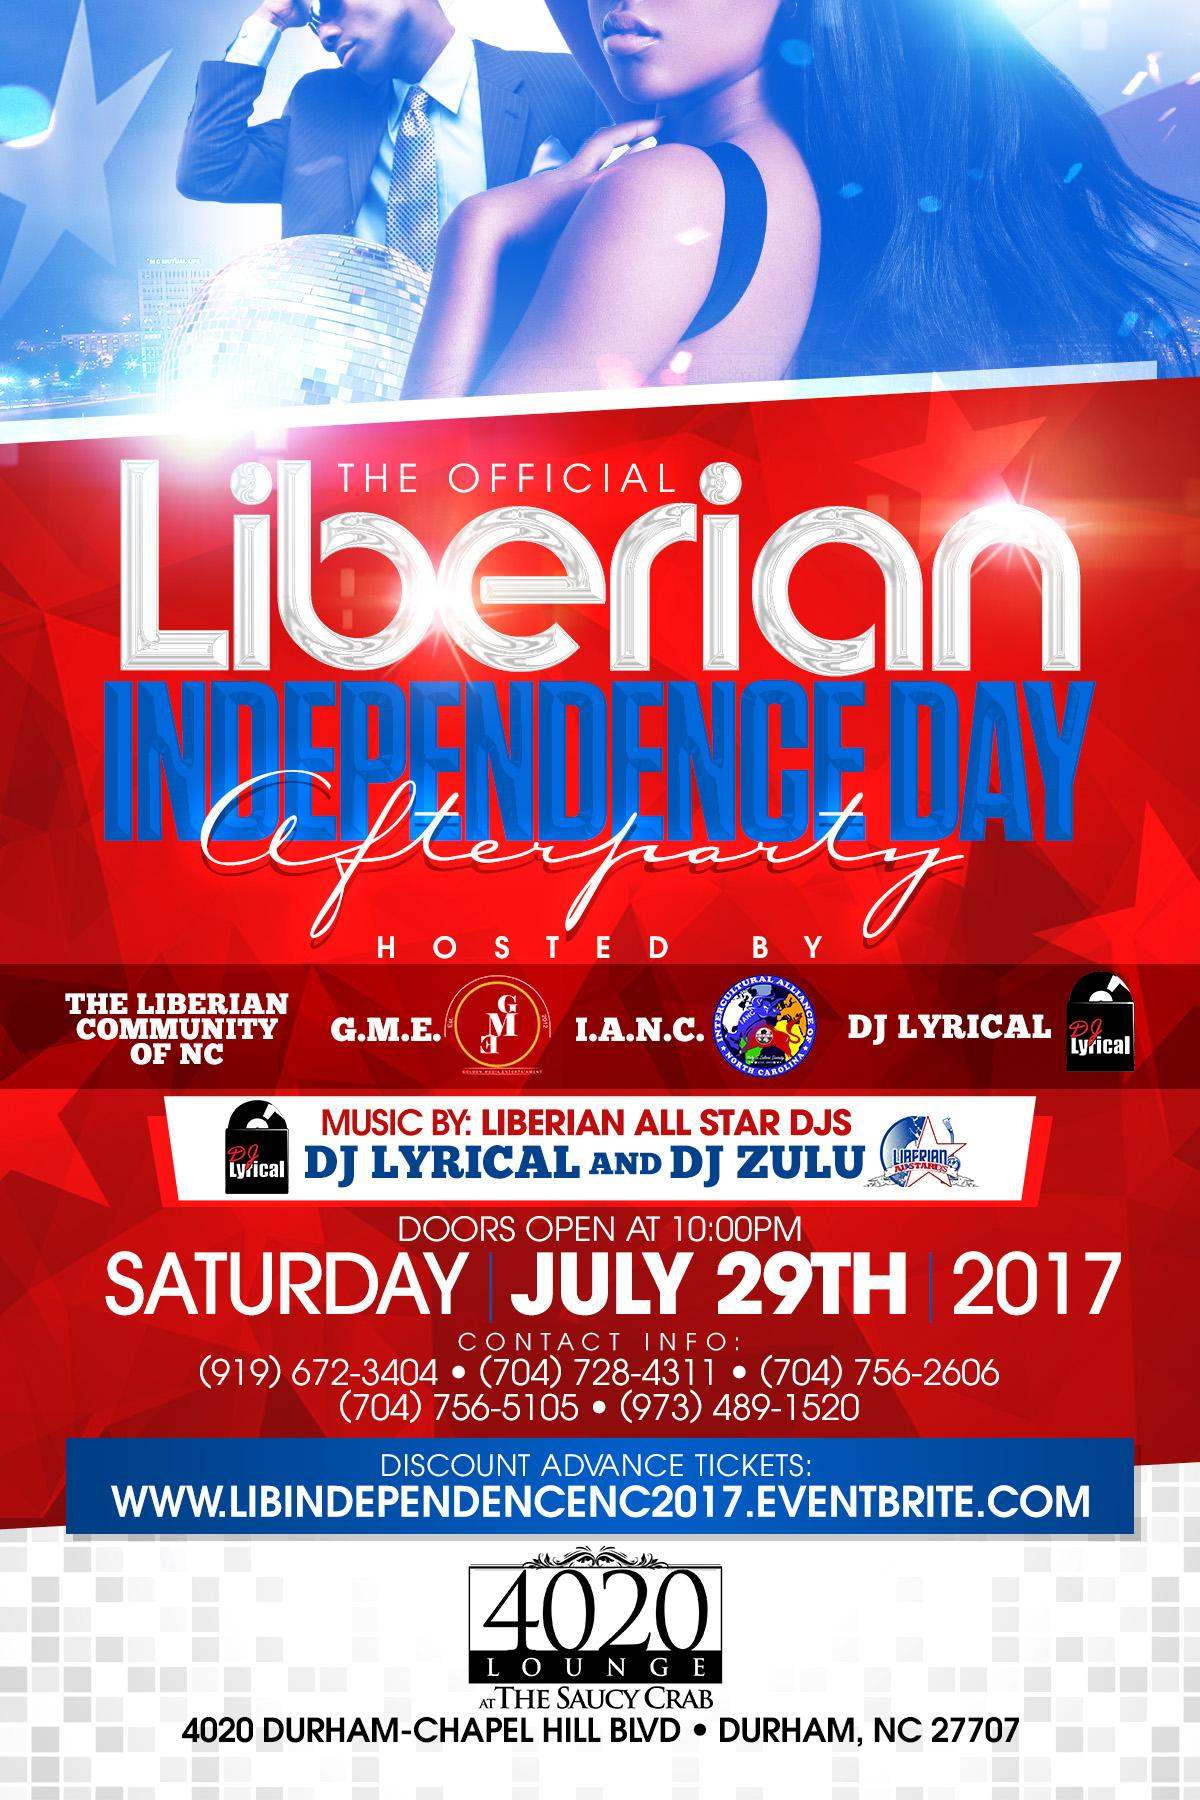 LIBERIAN INDEPENDENCE DAY AFTERPARTY NC